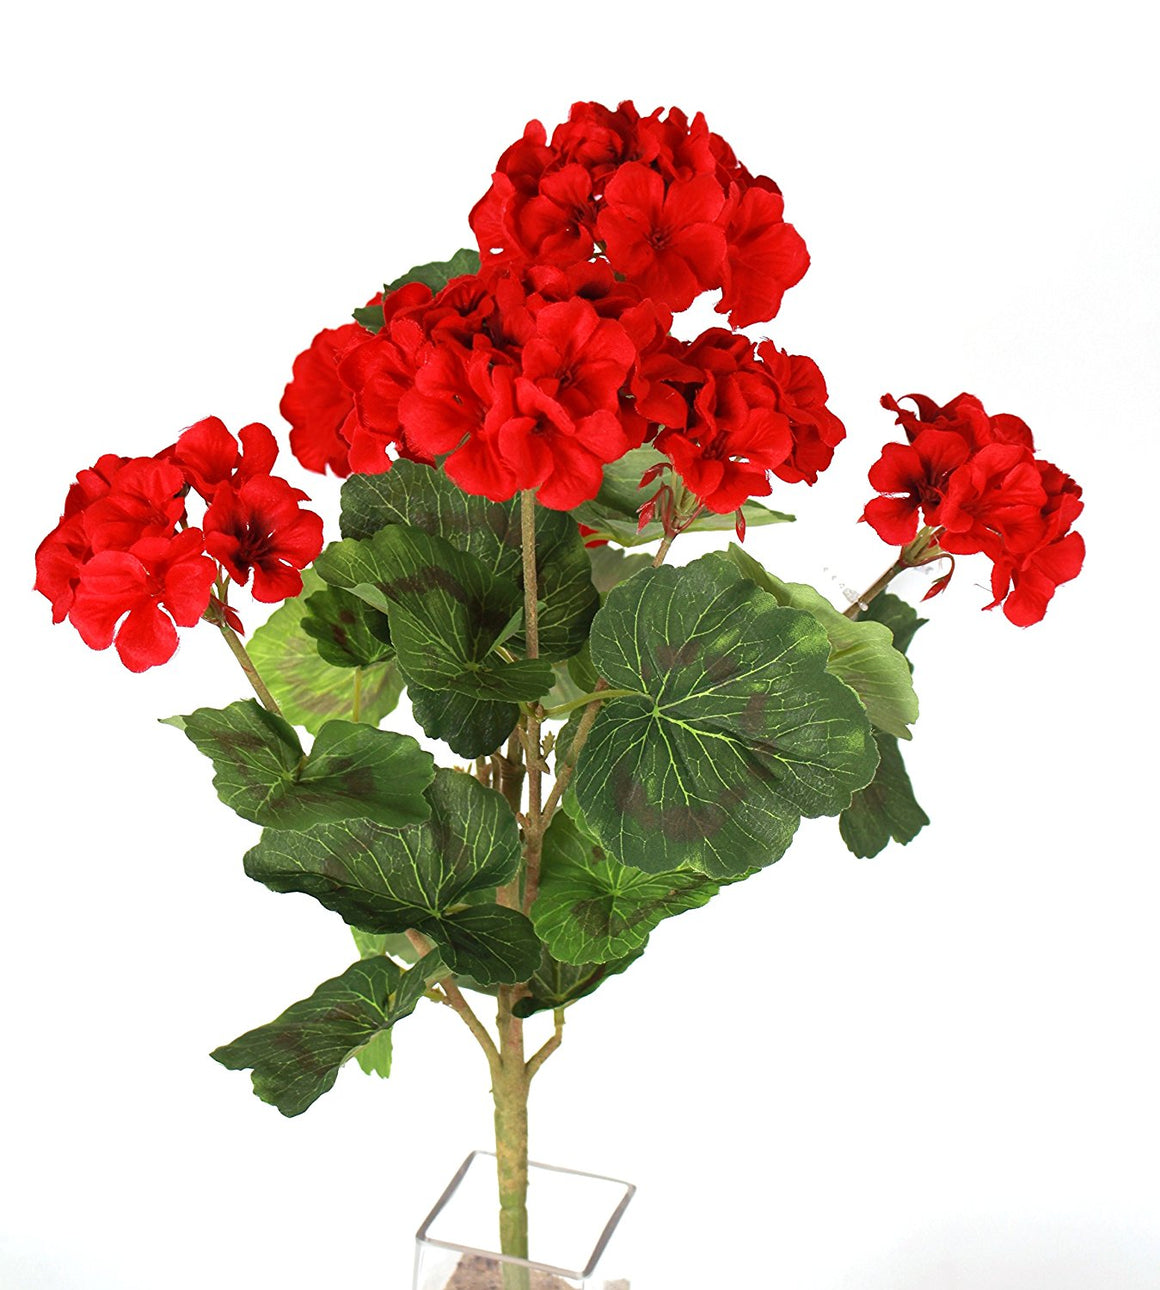 18 Inch Geranium Bush Red with 7 Flower Heads - Artificial Flower Bush